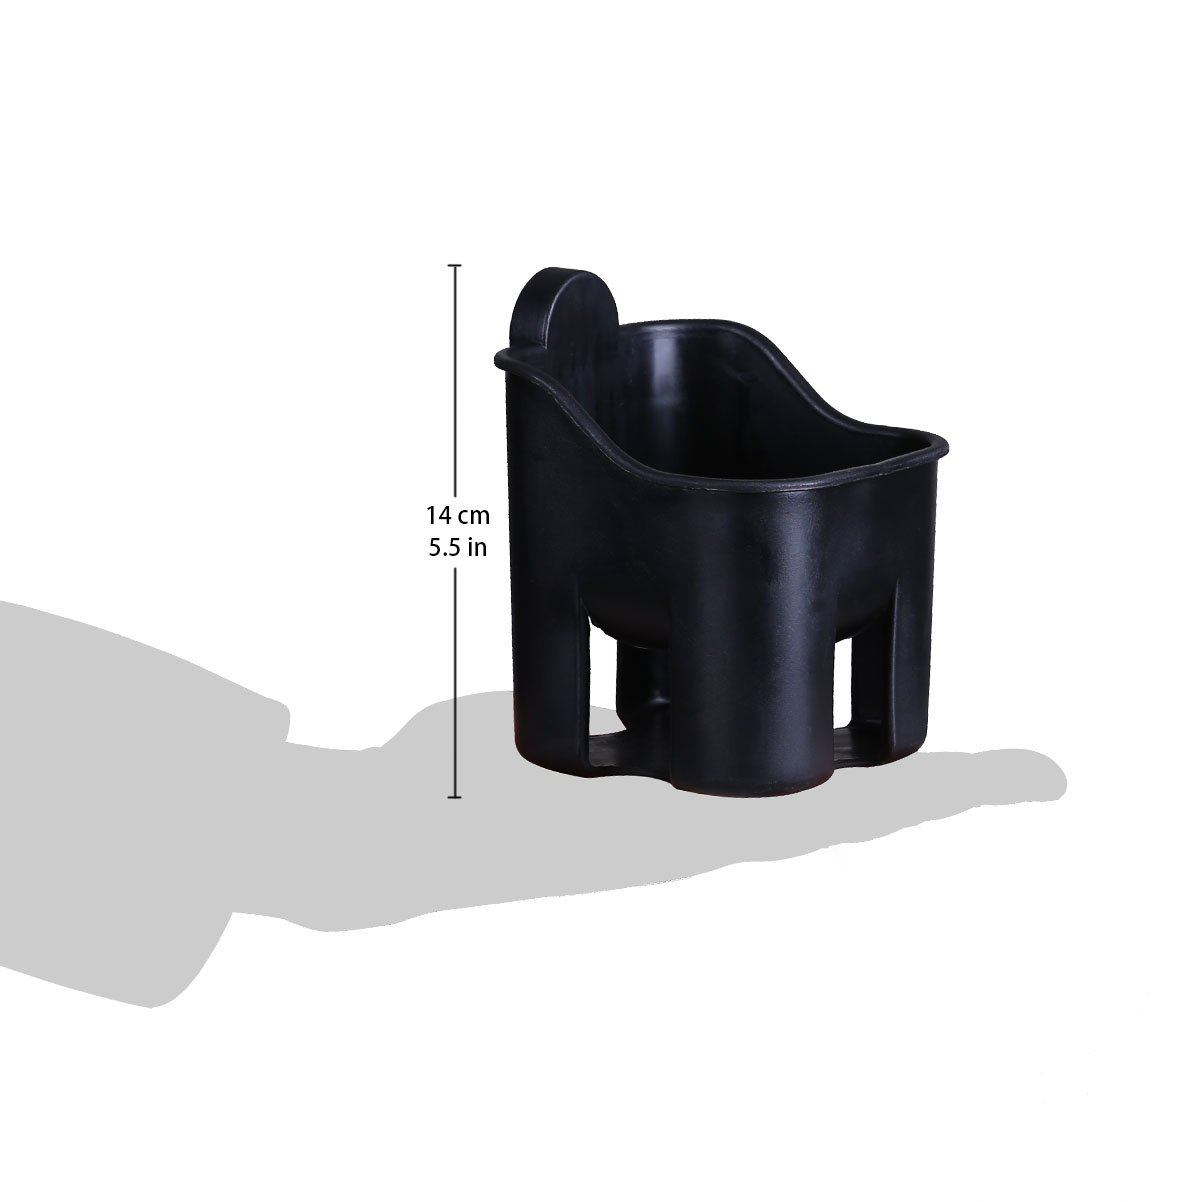 Cup Holder for Cynebaby Stroller X6 by HAIXIAO (Image #4)